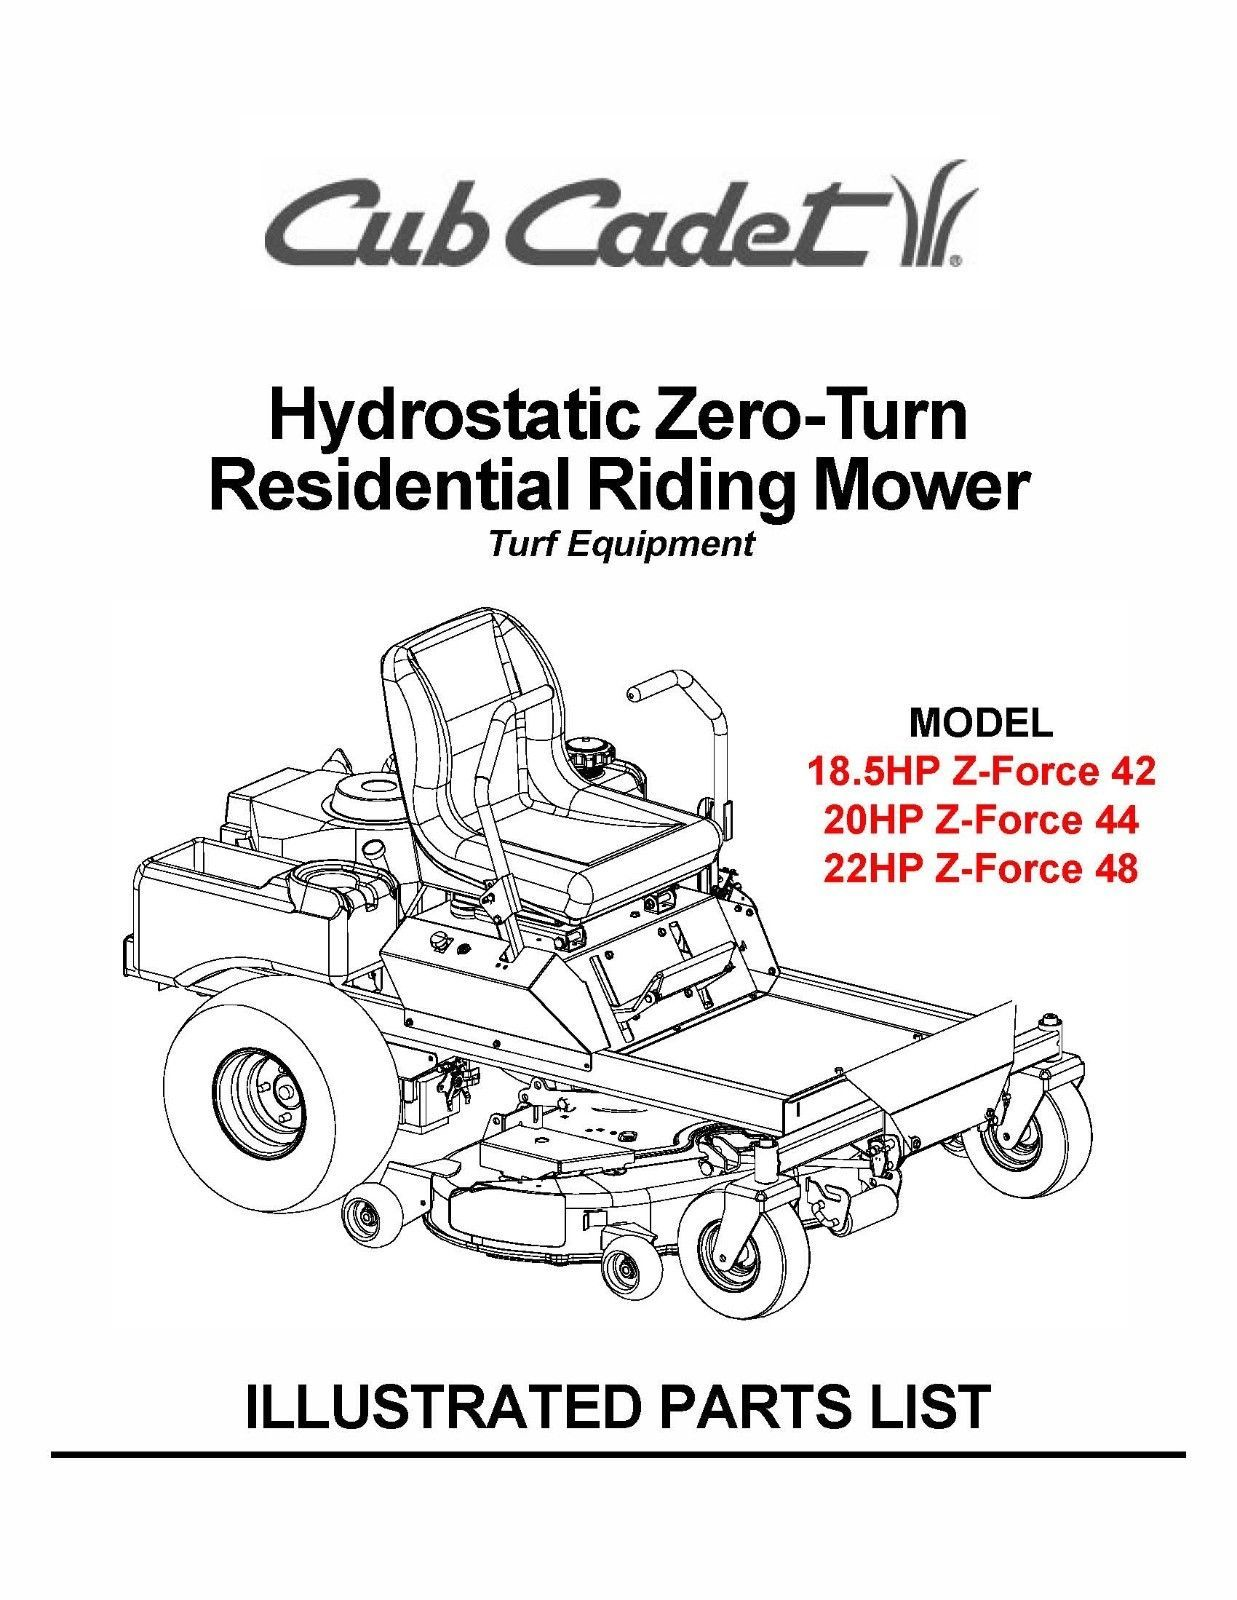 Cub Cadet Hydrostatic ZeroTurn Riding Mower Parts Manual Model #.ZFORCE 42-44-48